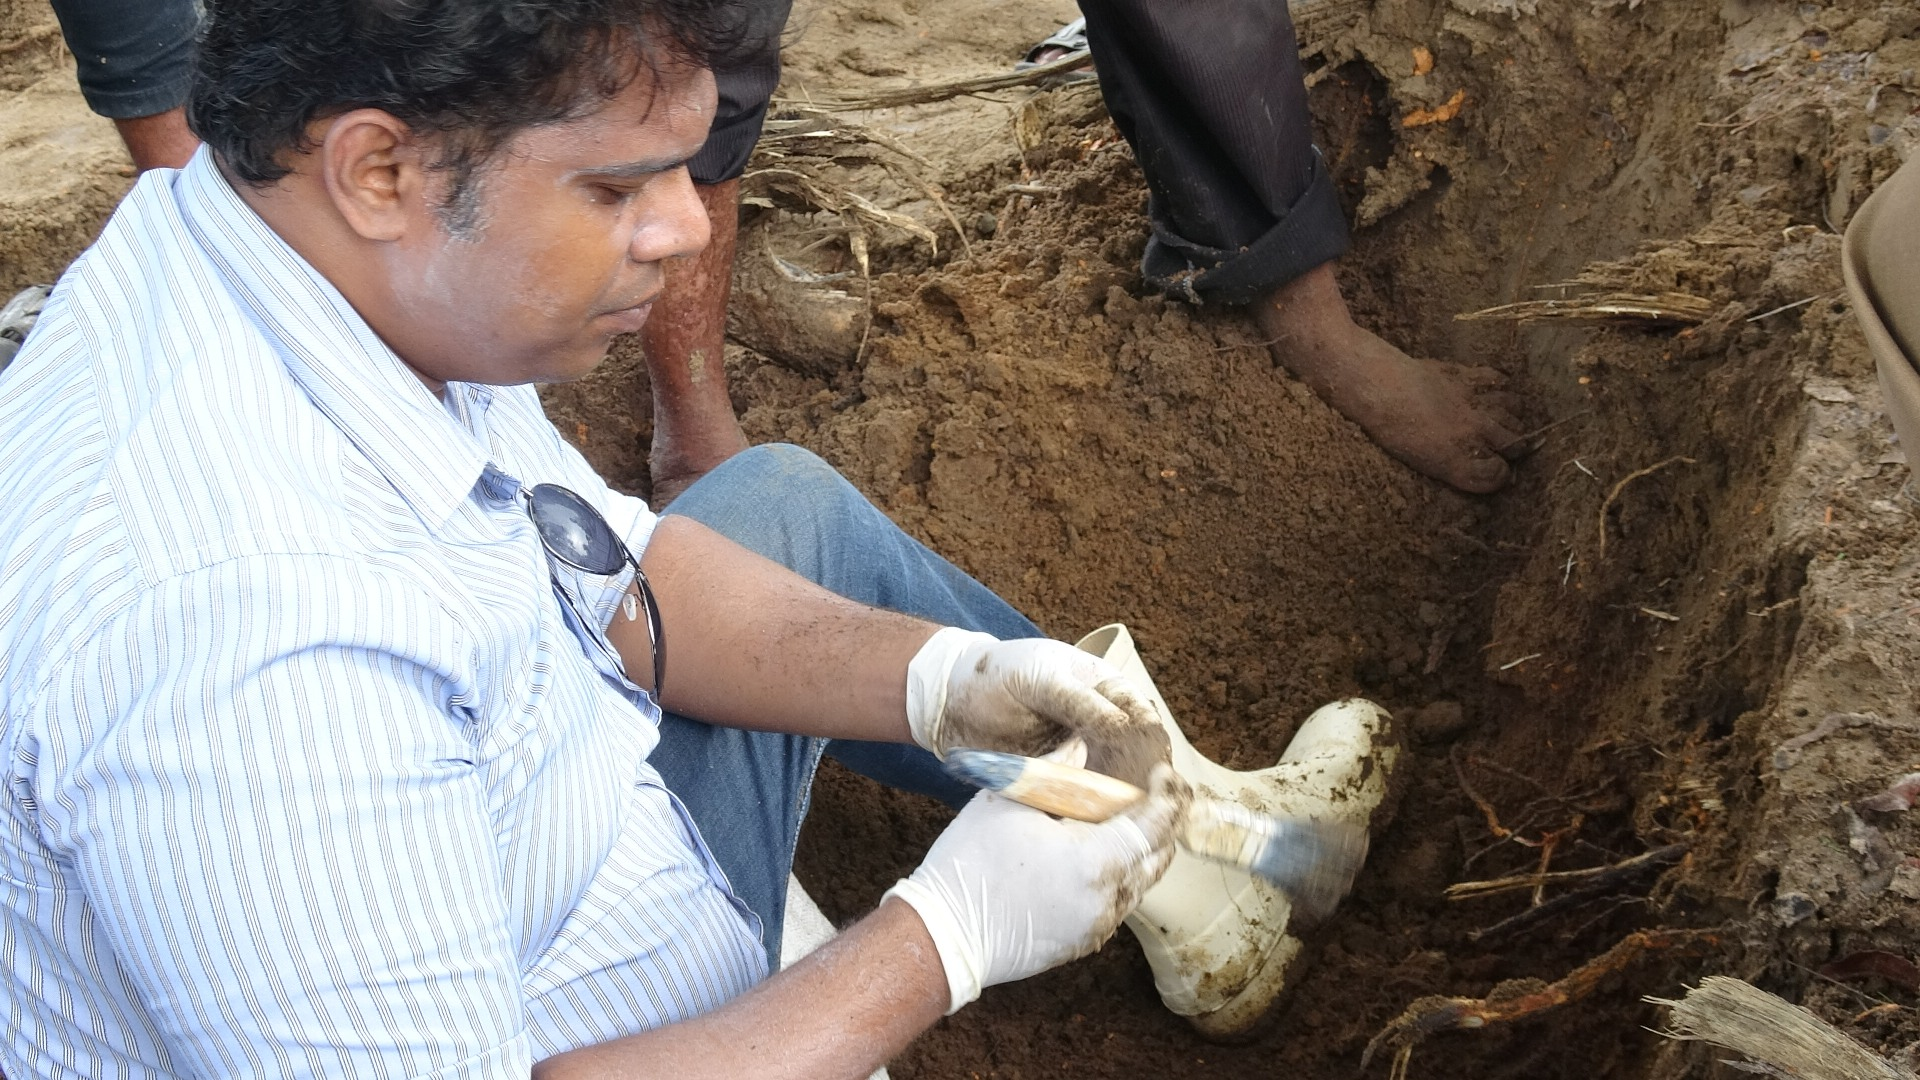 Sri Lanka Massacred Tens of Thousands of Tamils While the